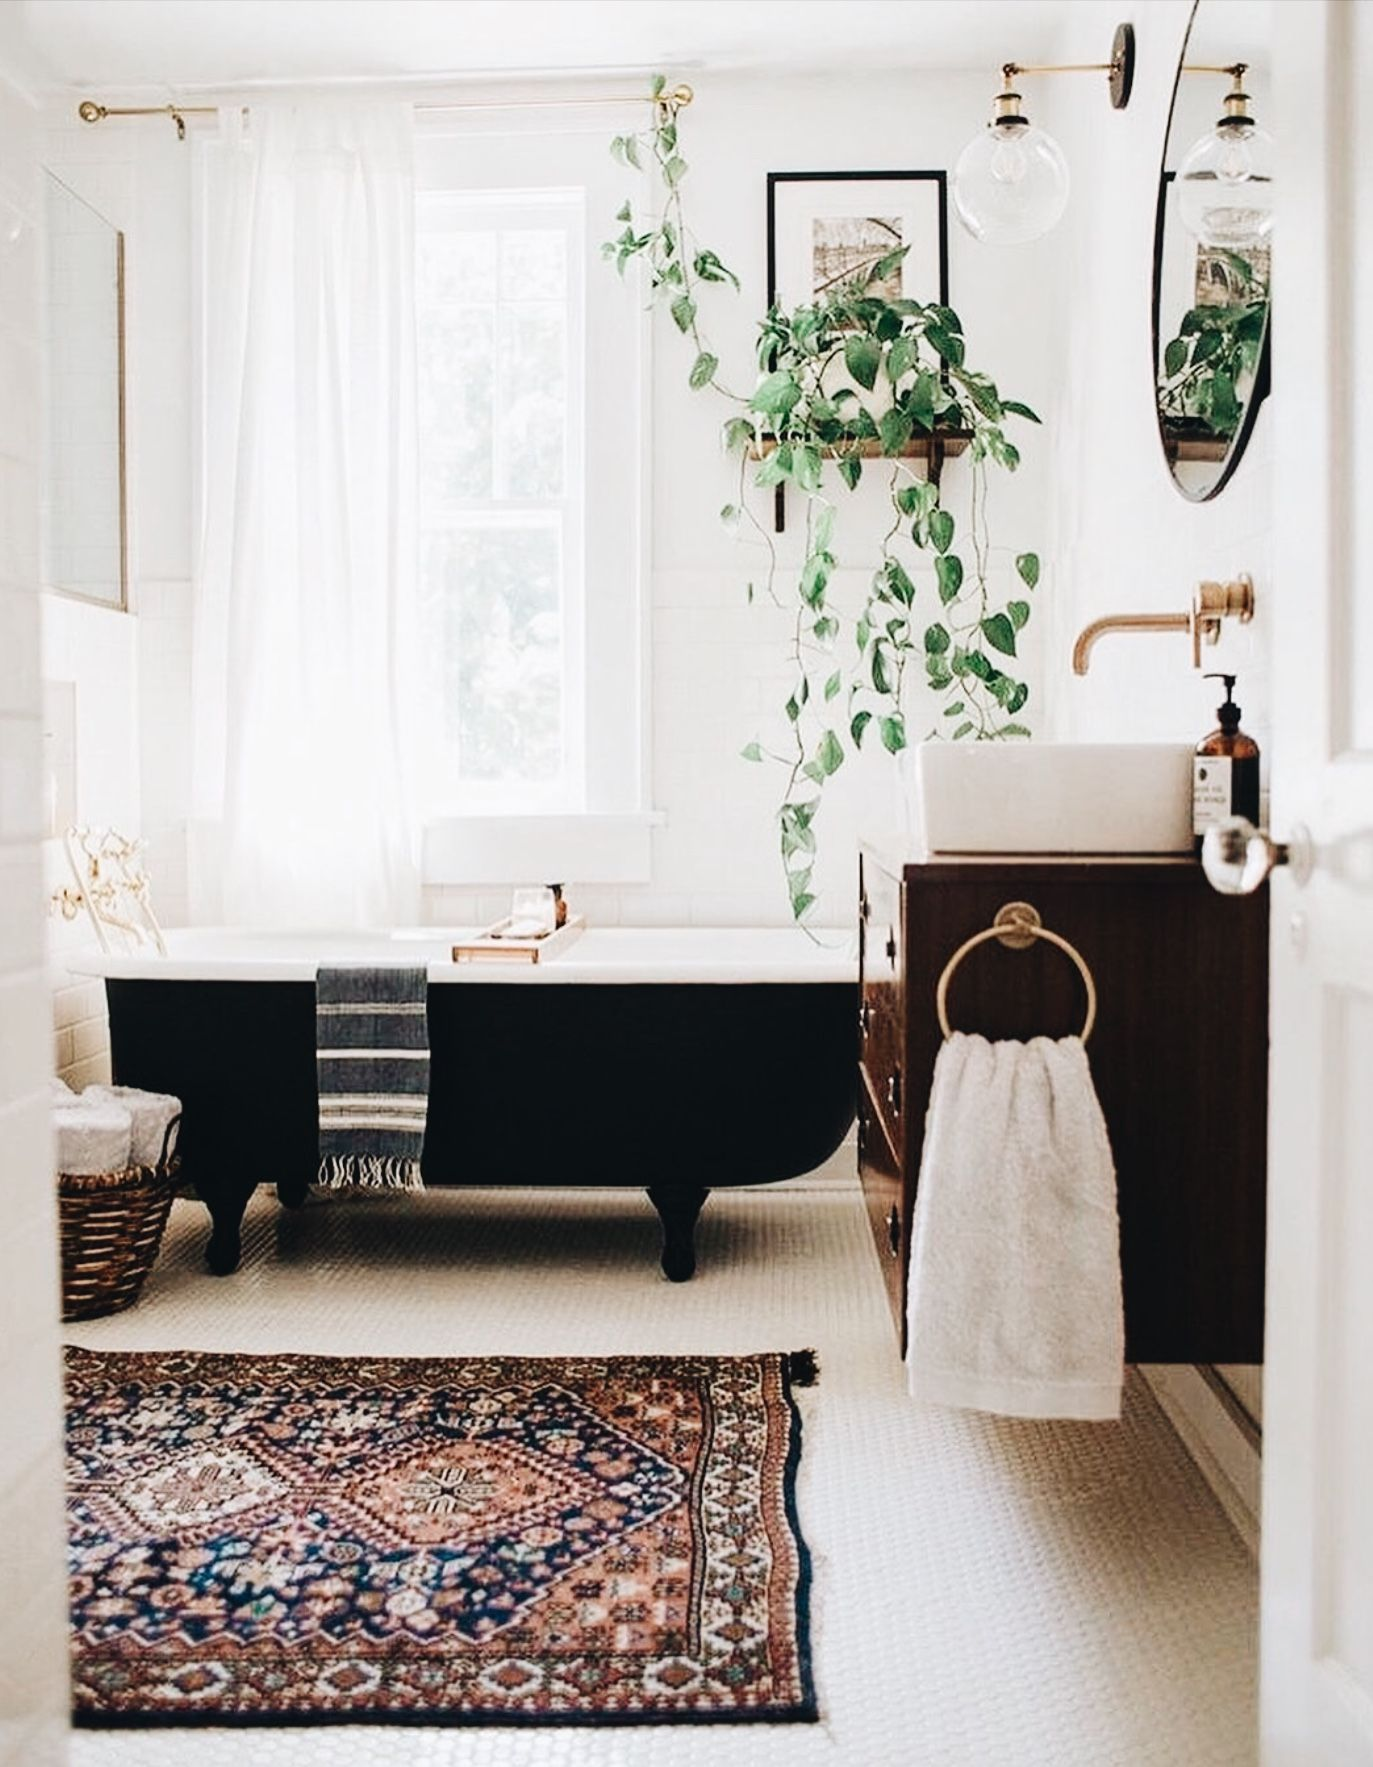 Pin by hannah berg on home in pinterest bathroom home and